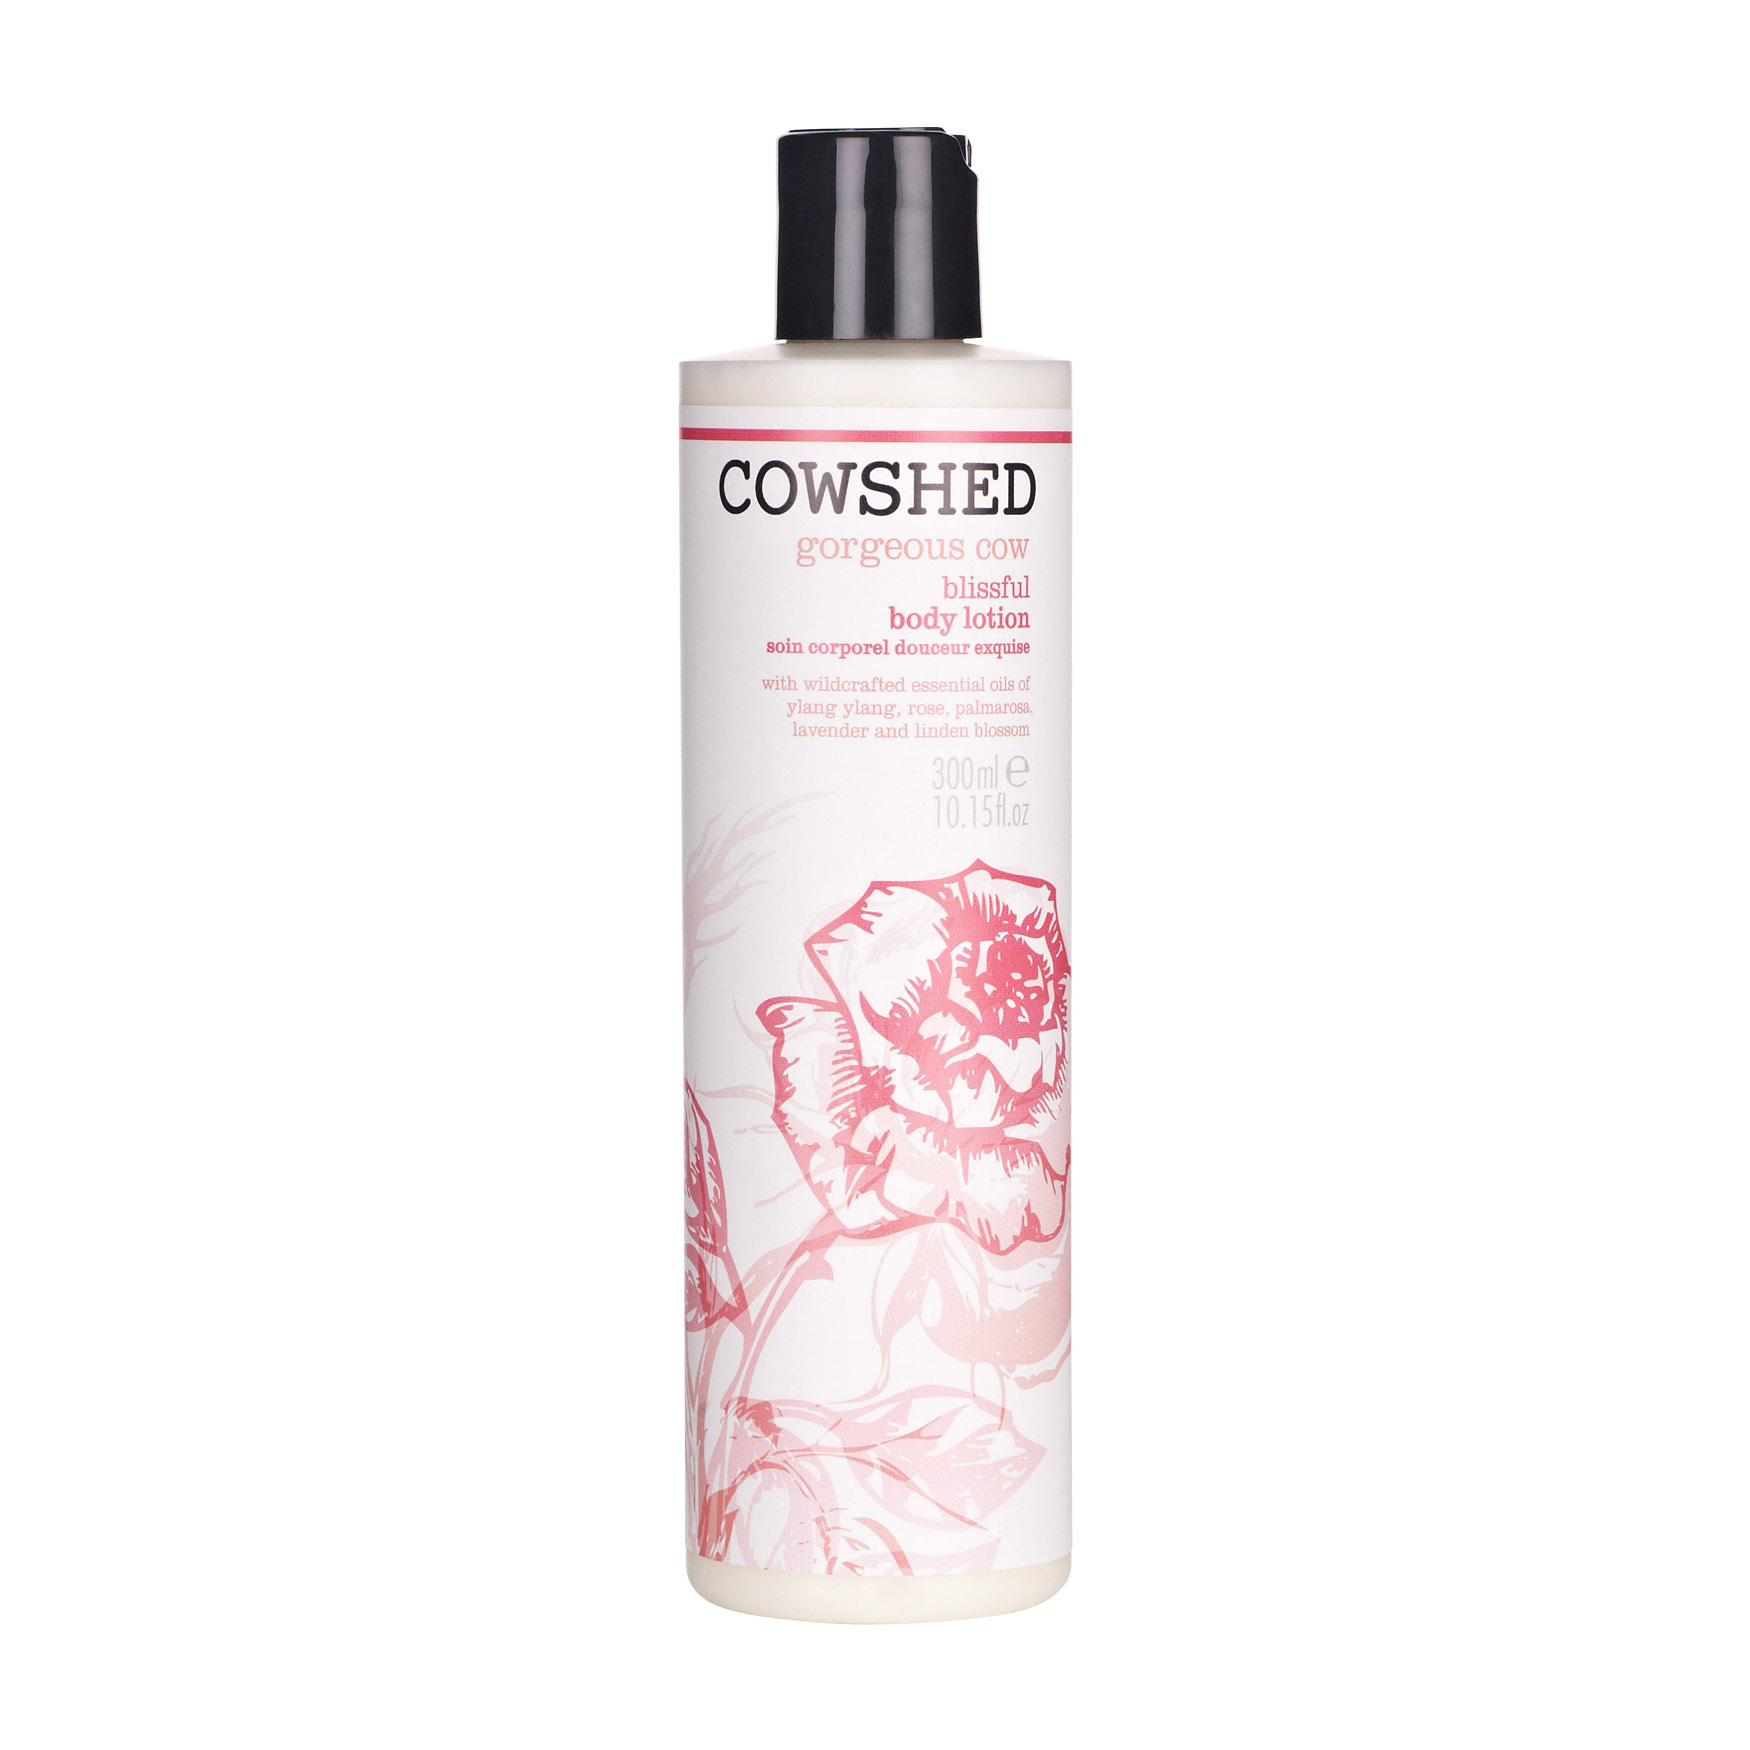 Gorgeous Cow Blissful Body Lotion, , large